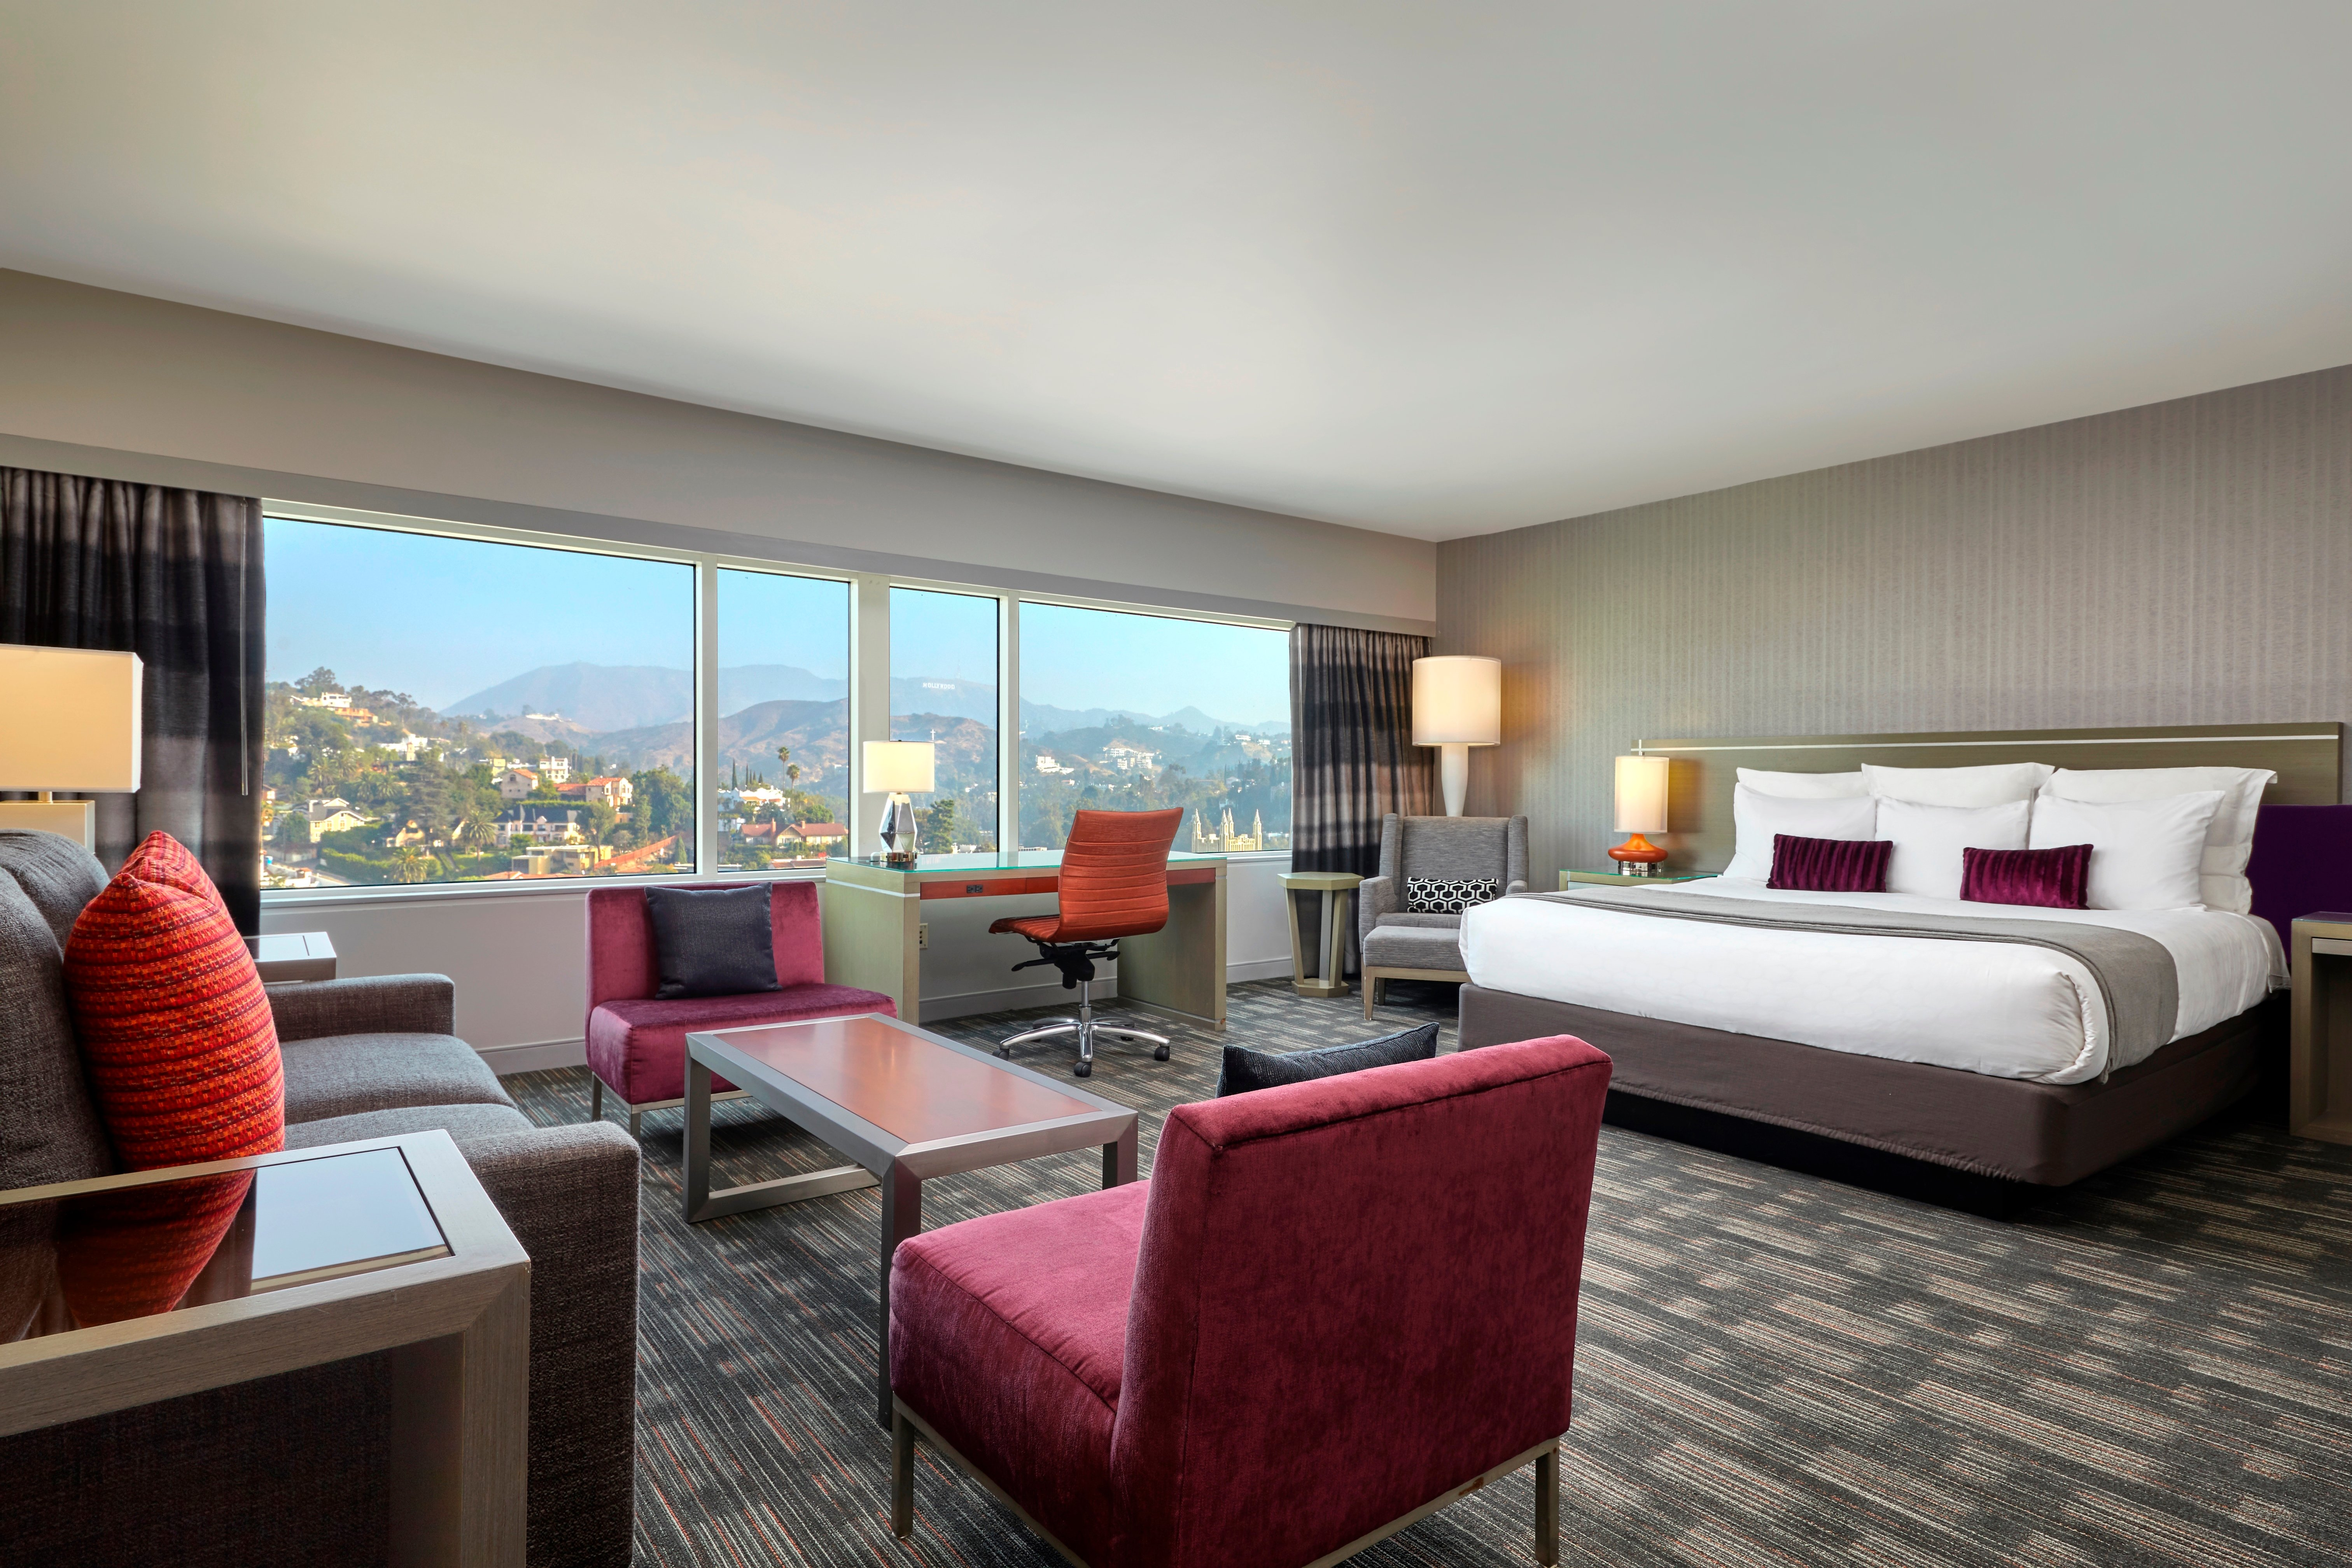 A large king room with grey tones and red accents that overlooks the famous Hollywood sign